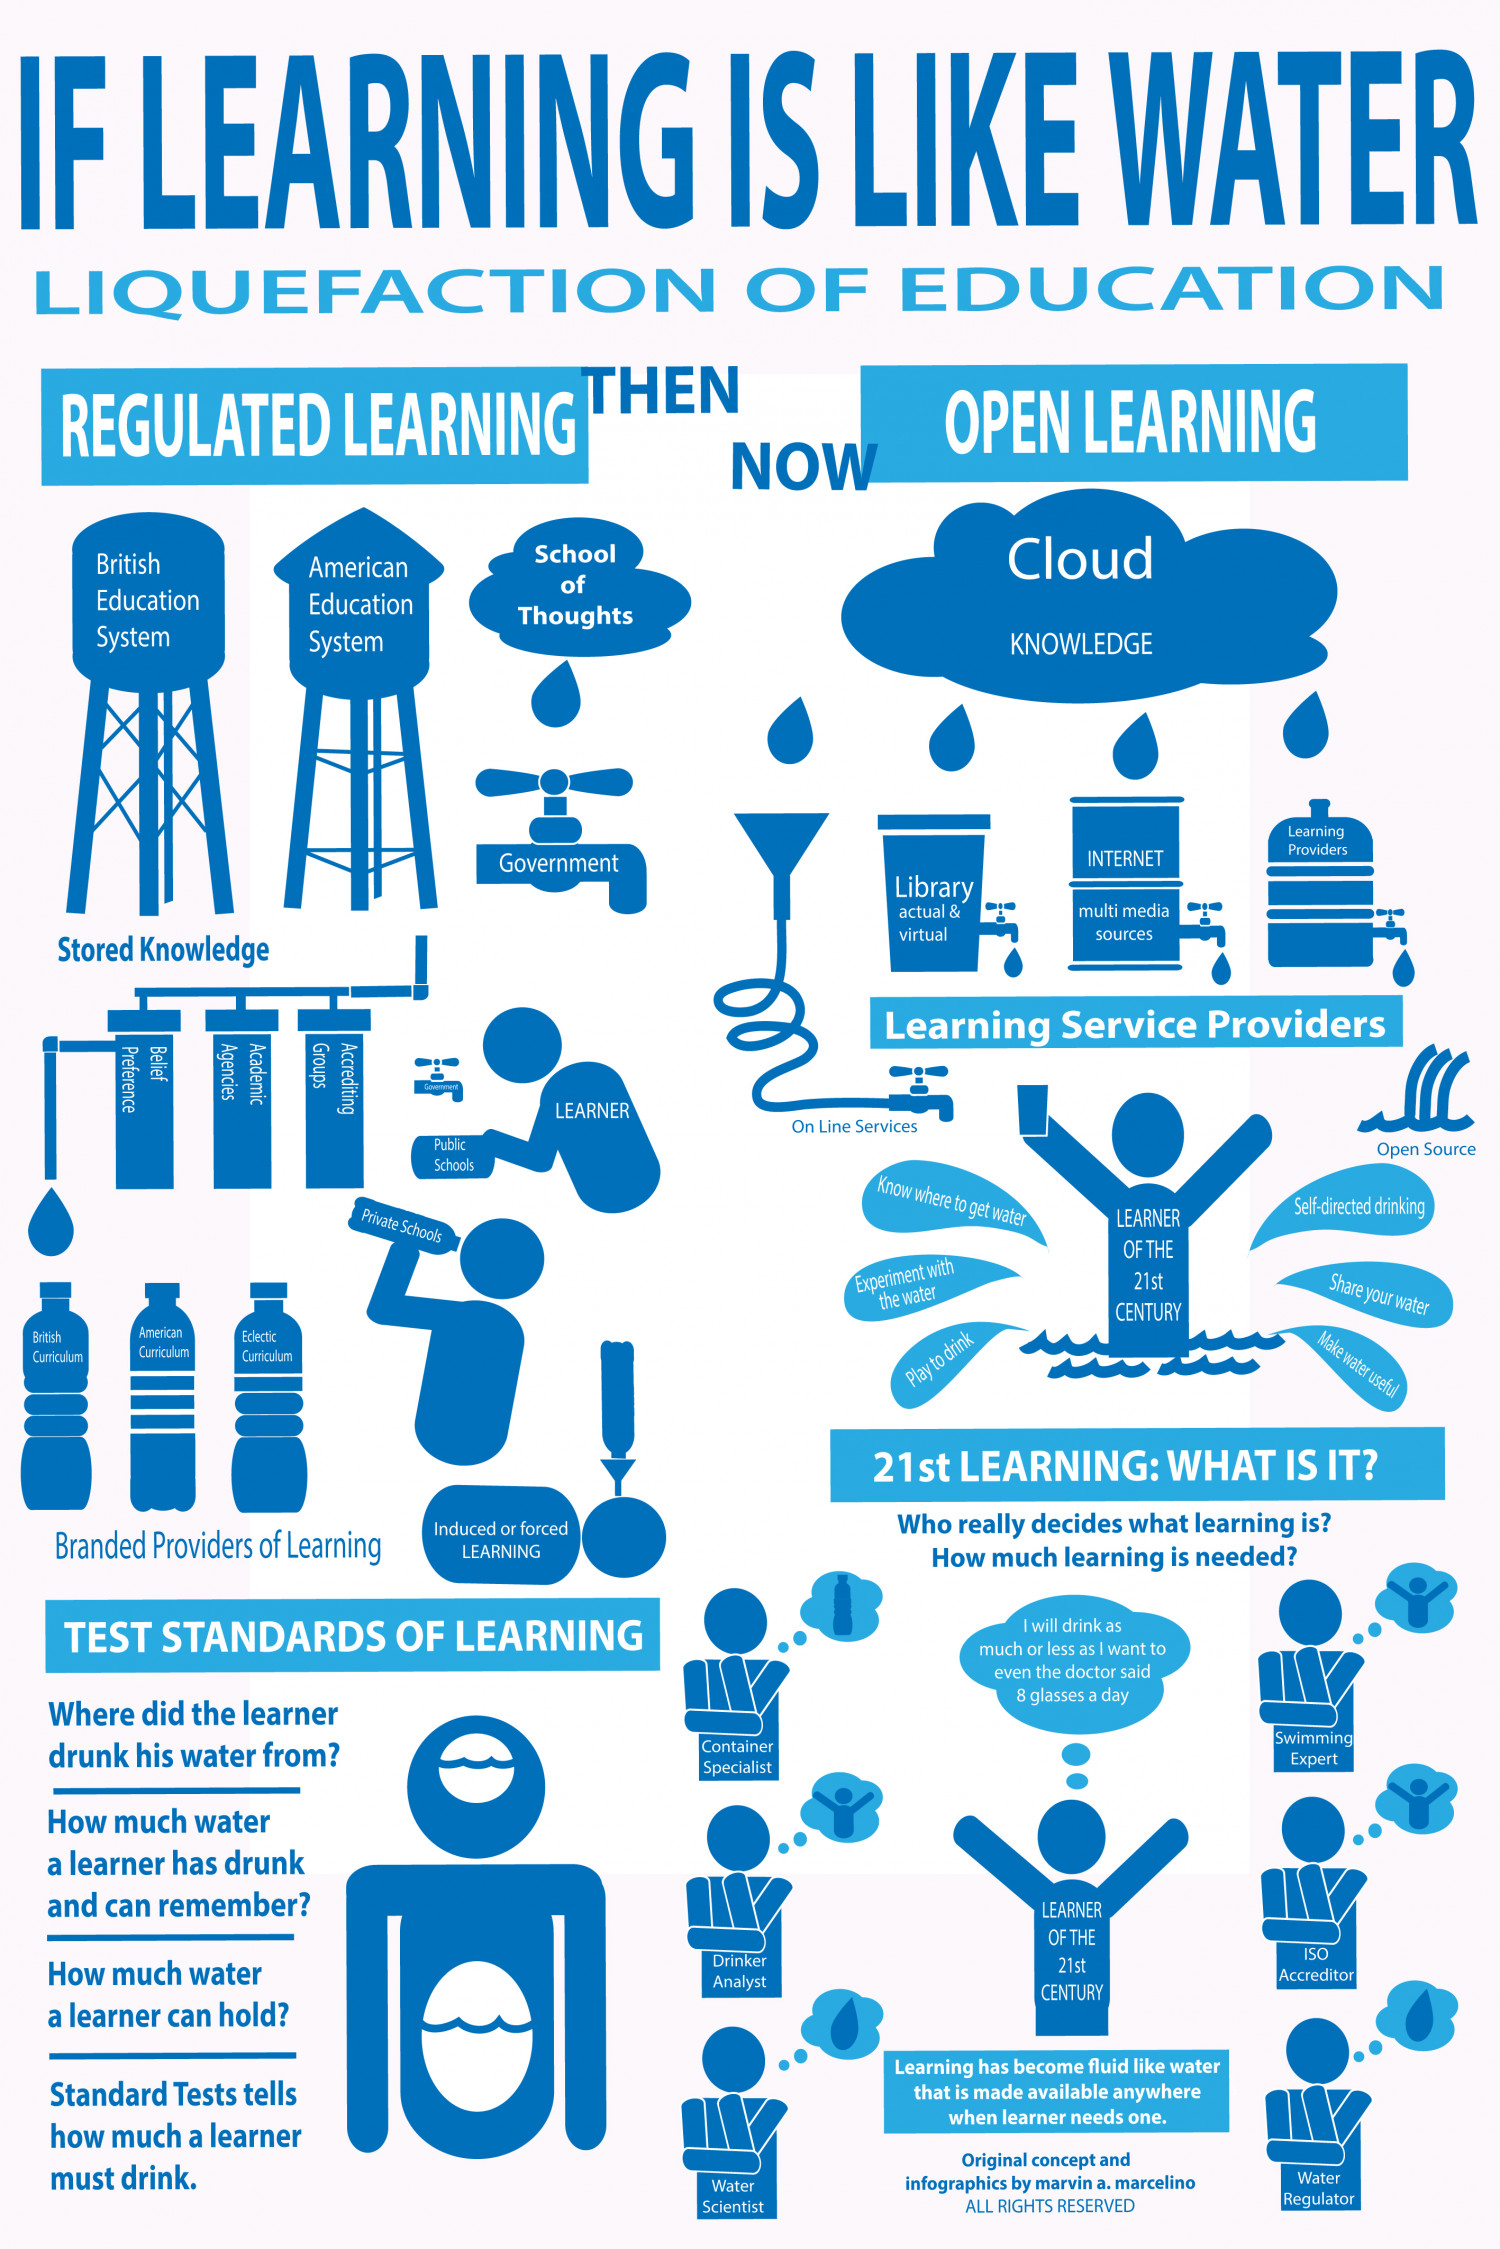 If Learning is Like Water Infographic